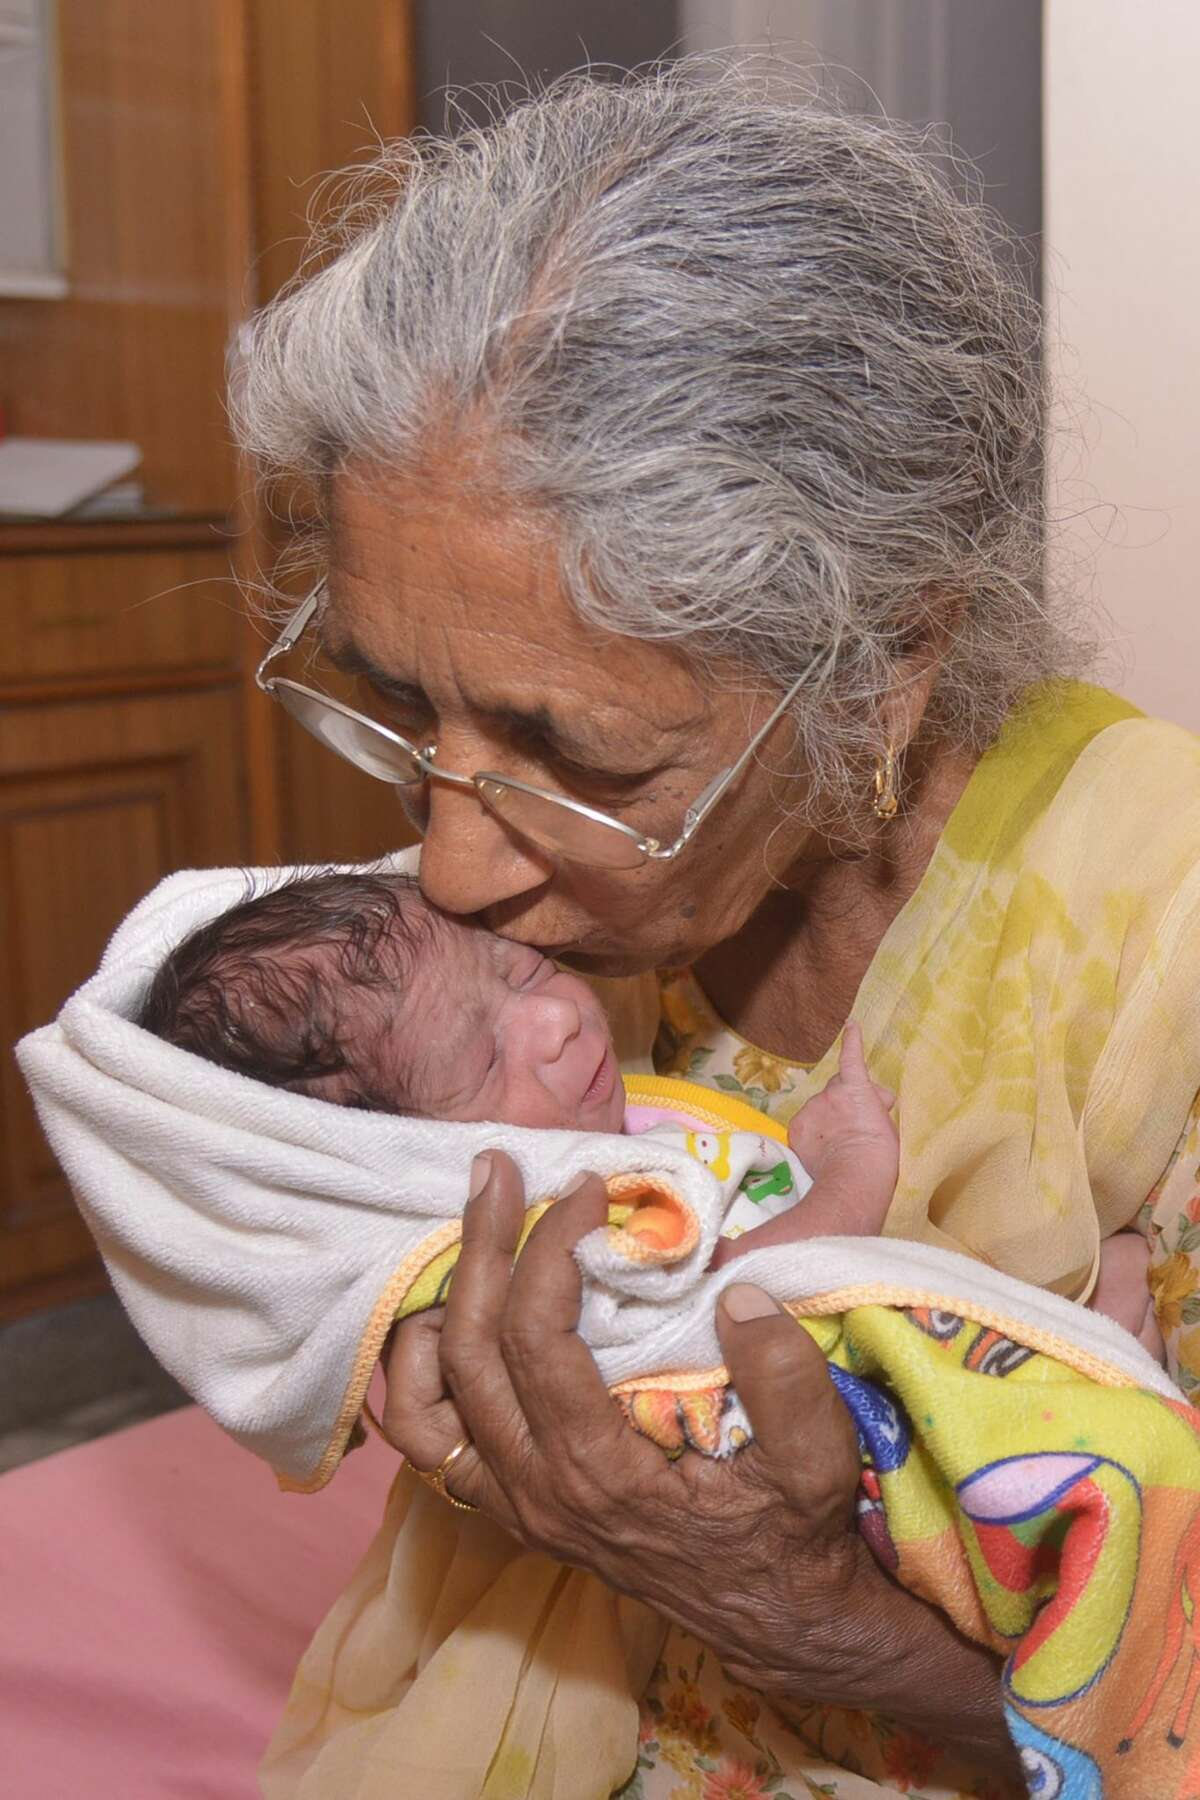 Indian mother Daljinder Kaur, 70, poses for a photograph as she holds her newborn baby boy Arman at their home in Amritsar on May 11, 2016. An Indian woman who gave birth at the age of 70 said May 10 she was not too old to become a first-time mother, adding that her life was now complete. Daljinder Kaur gave birth last month to a boy following two years of IVF treatment at a fertility clinic in the northern state of Haryana with her 79-year-old husband.